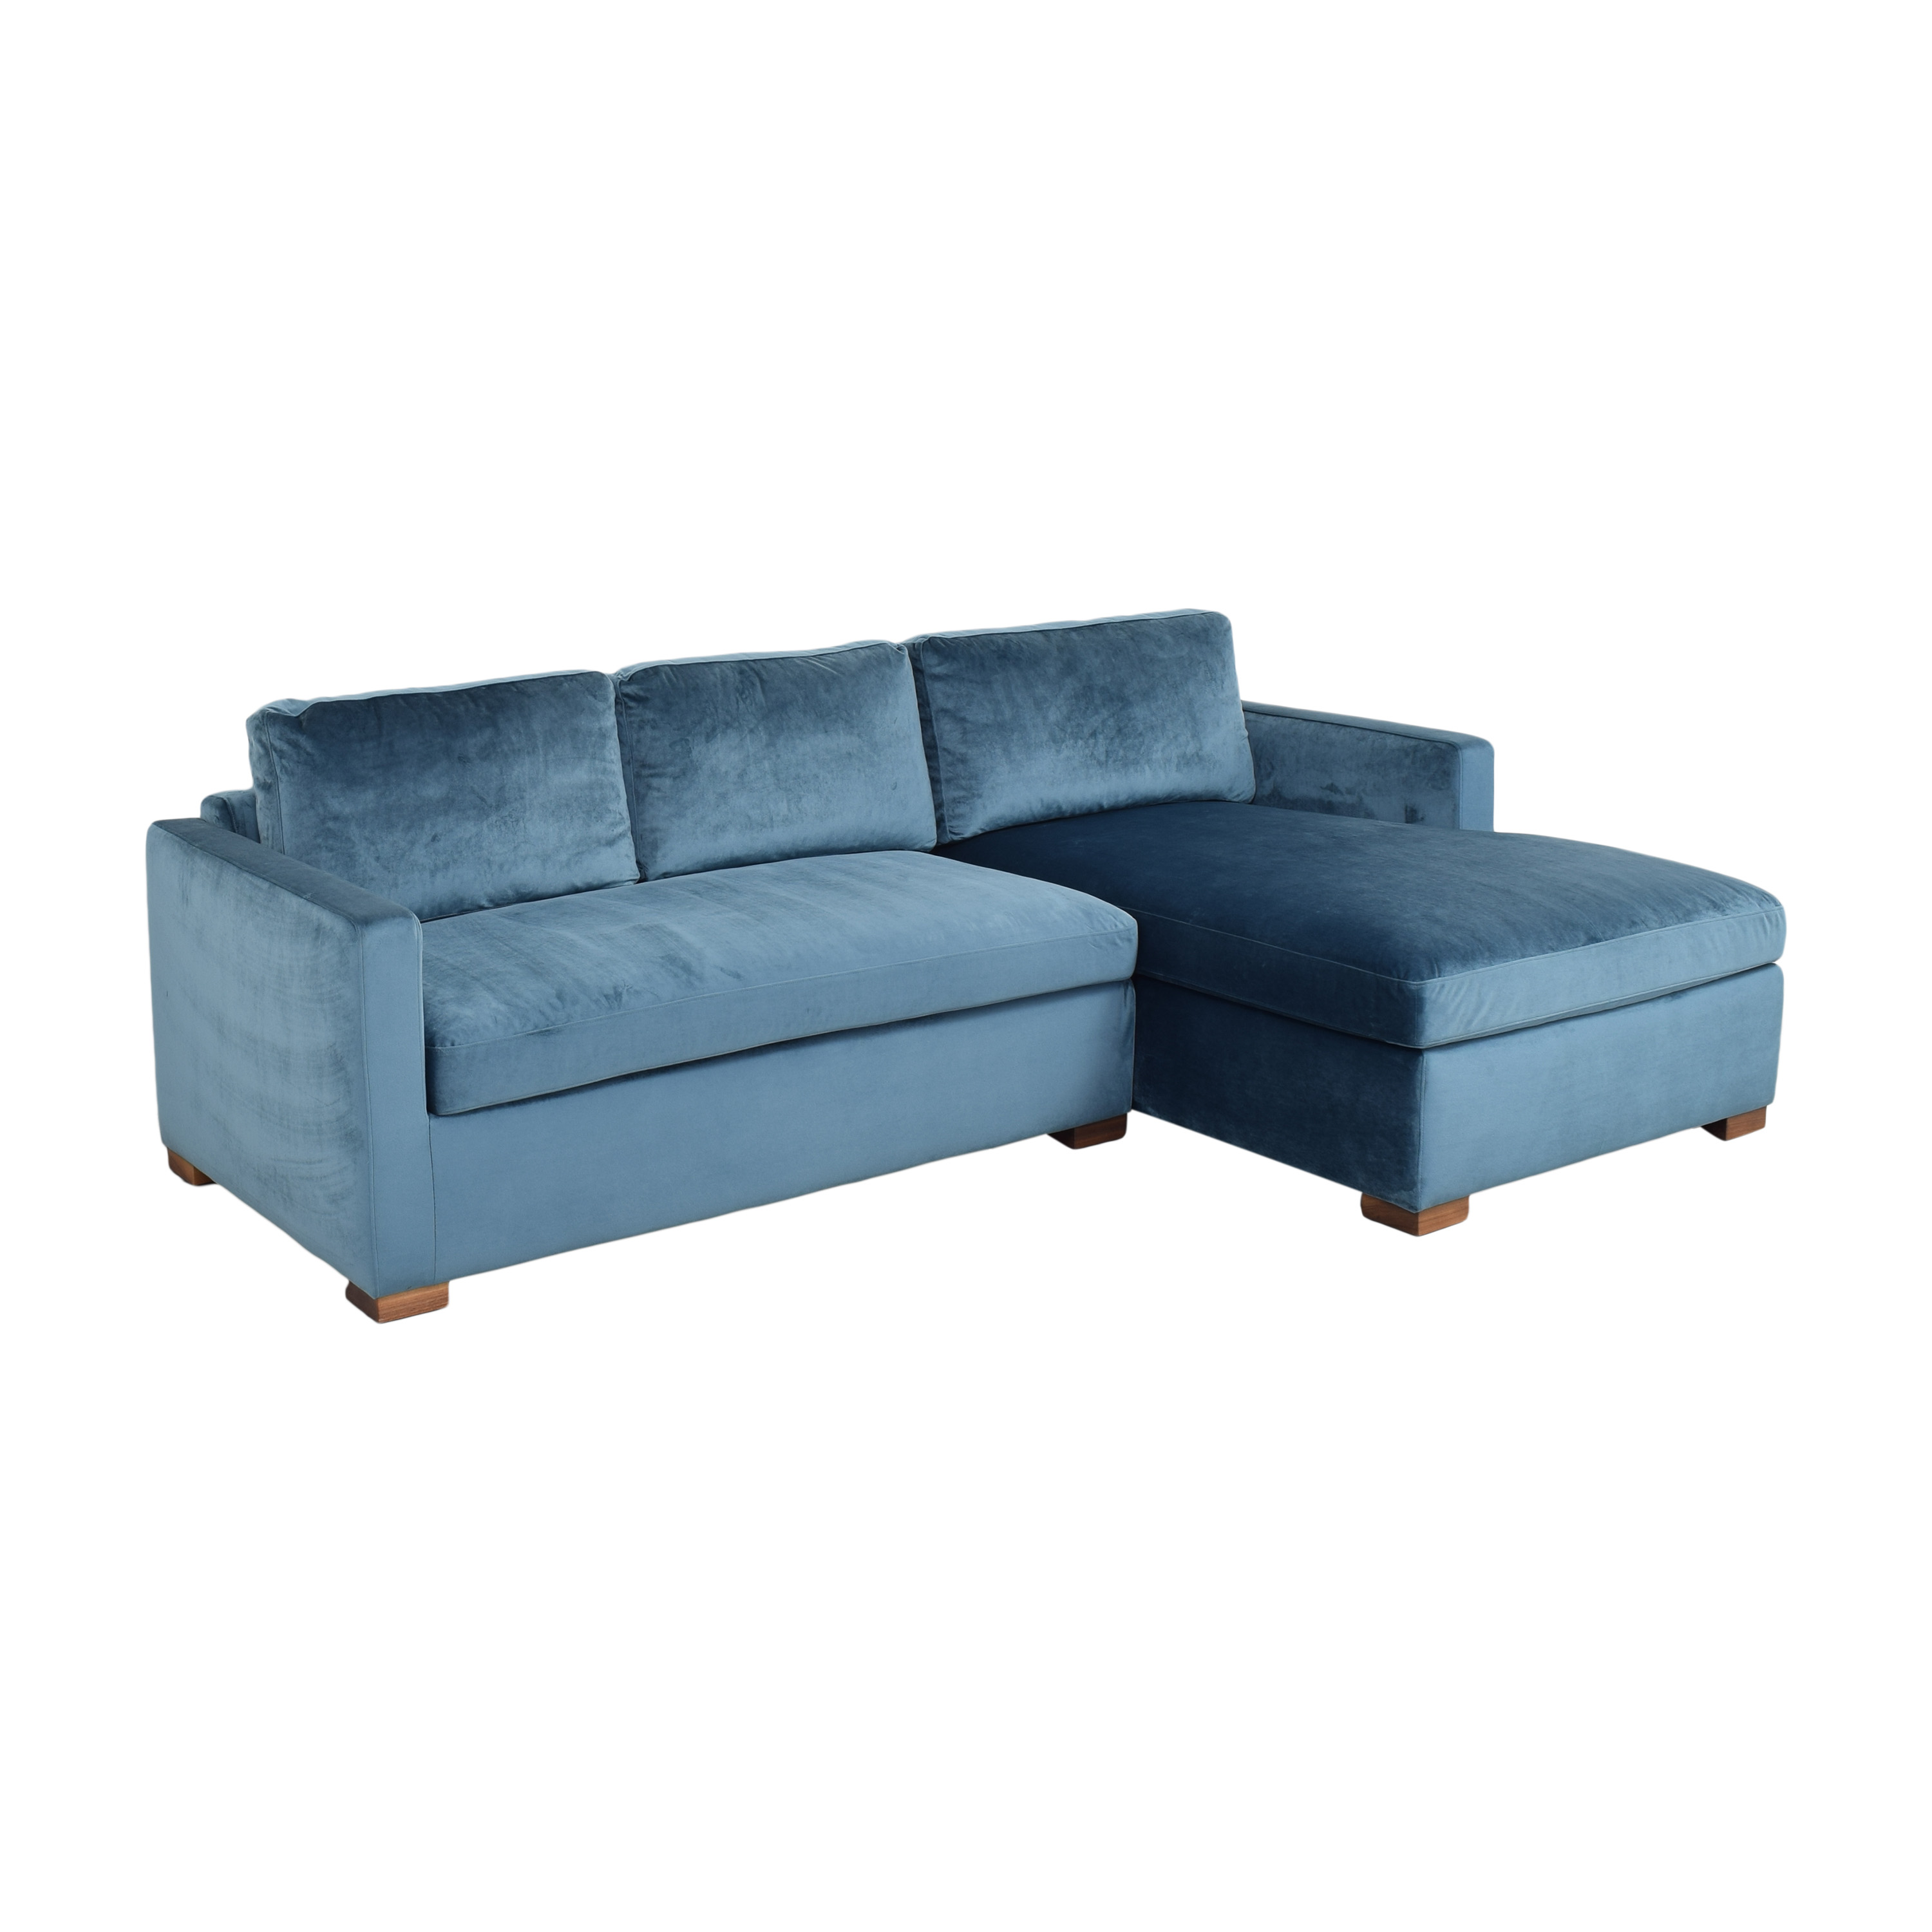 Interior Define Interior Define Charly Sectional Sofa with Chaise pa